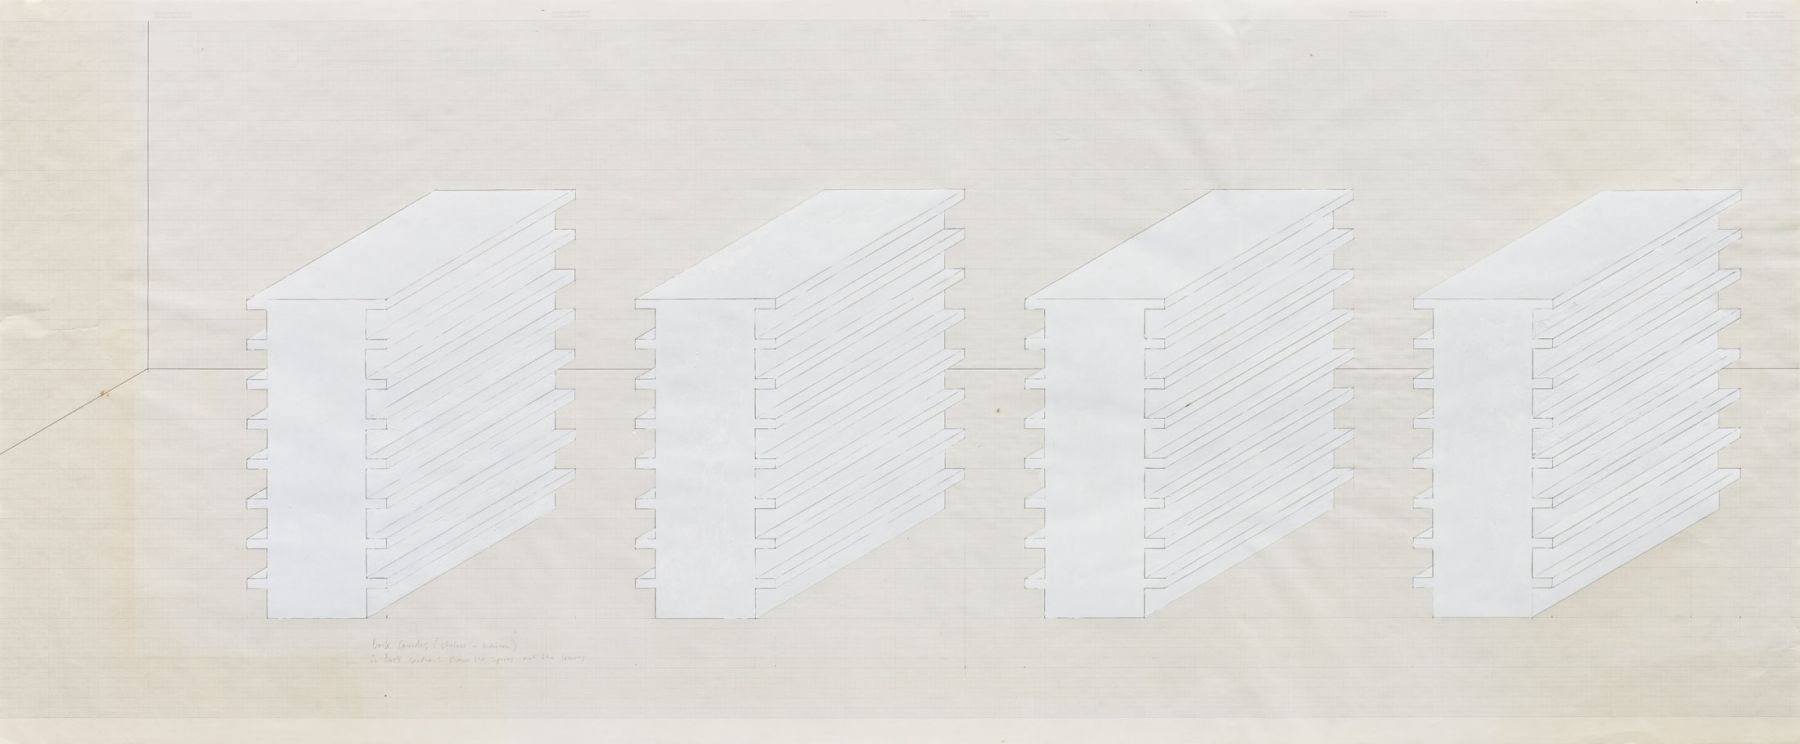 Rachel Whiteread Book Corridors, 1997